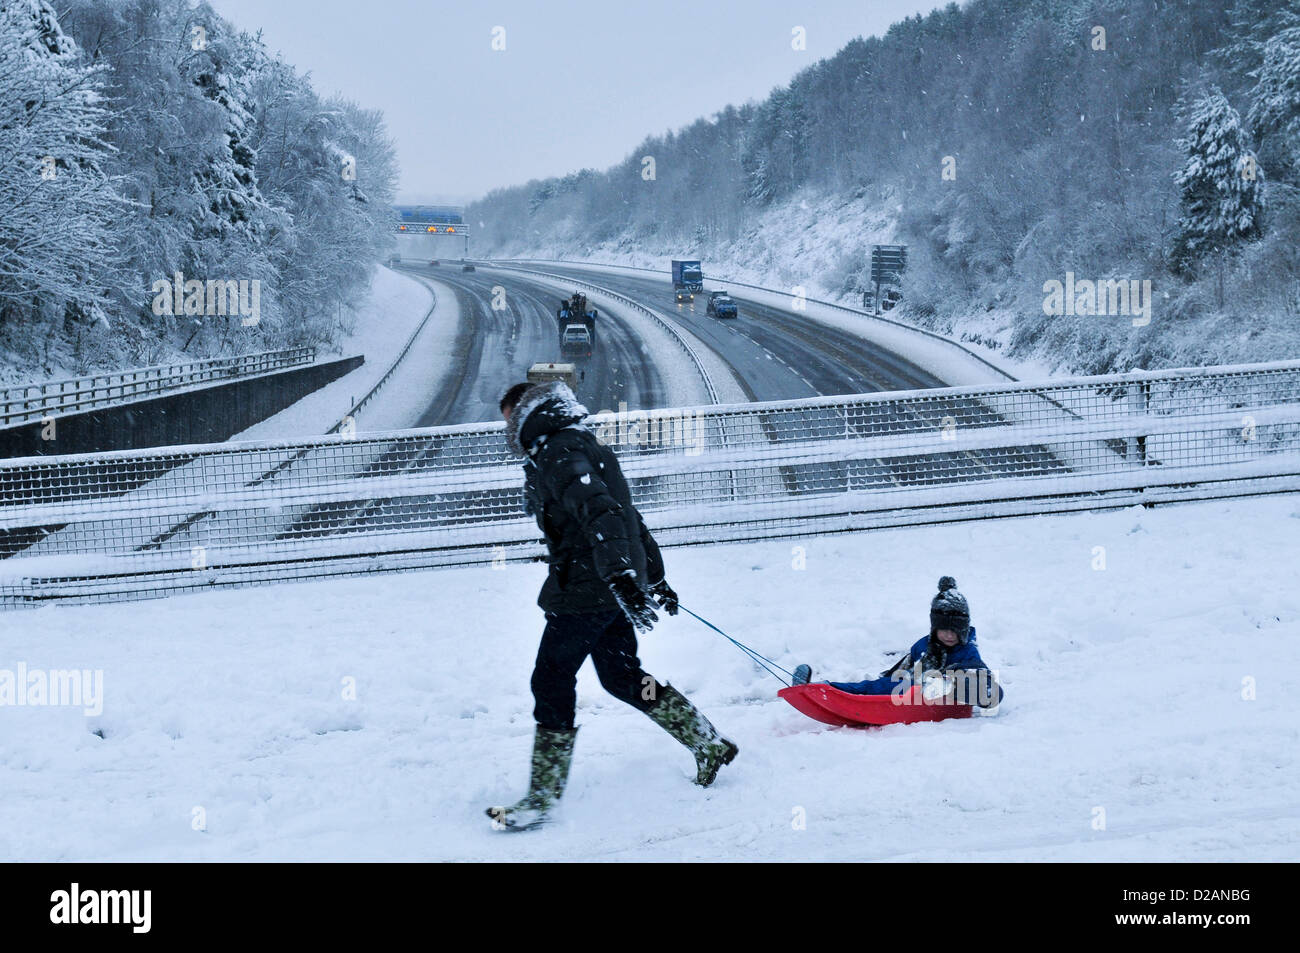 M4 Motorway. Cardiff, UK. Friday 18th January 2013. A man pulls his child on a sledge across a bridge over the M4 - Stock Image